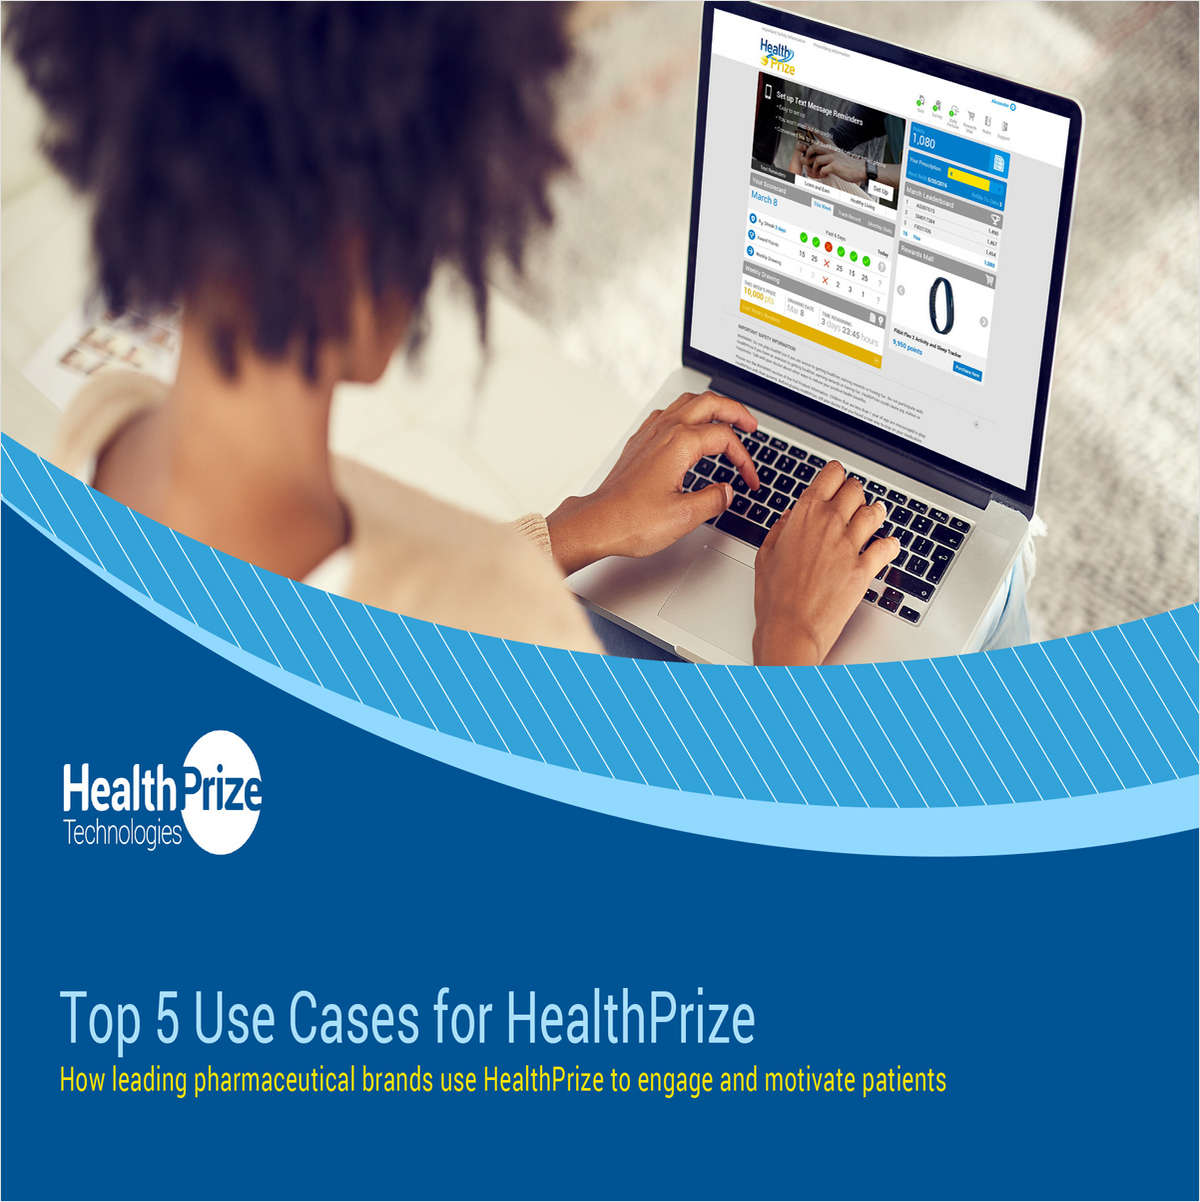 Top 5 Use Cases for HealthPrize